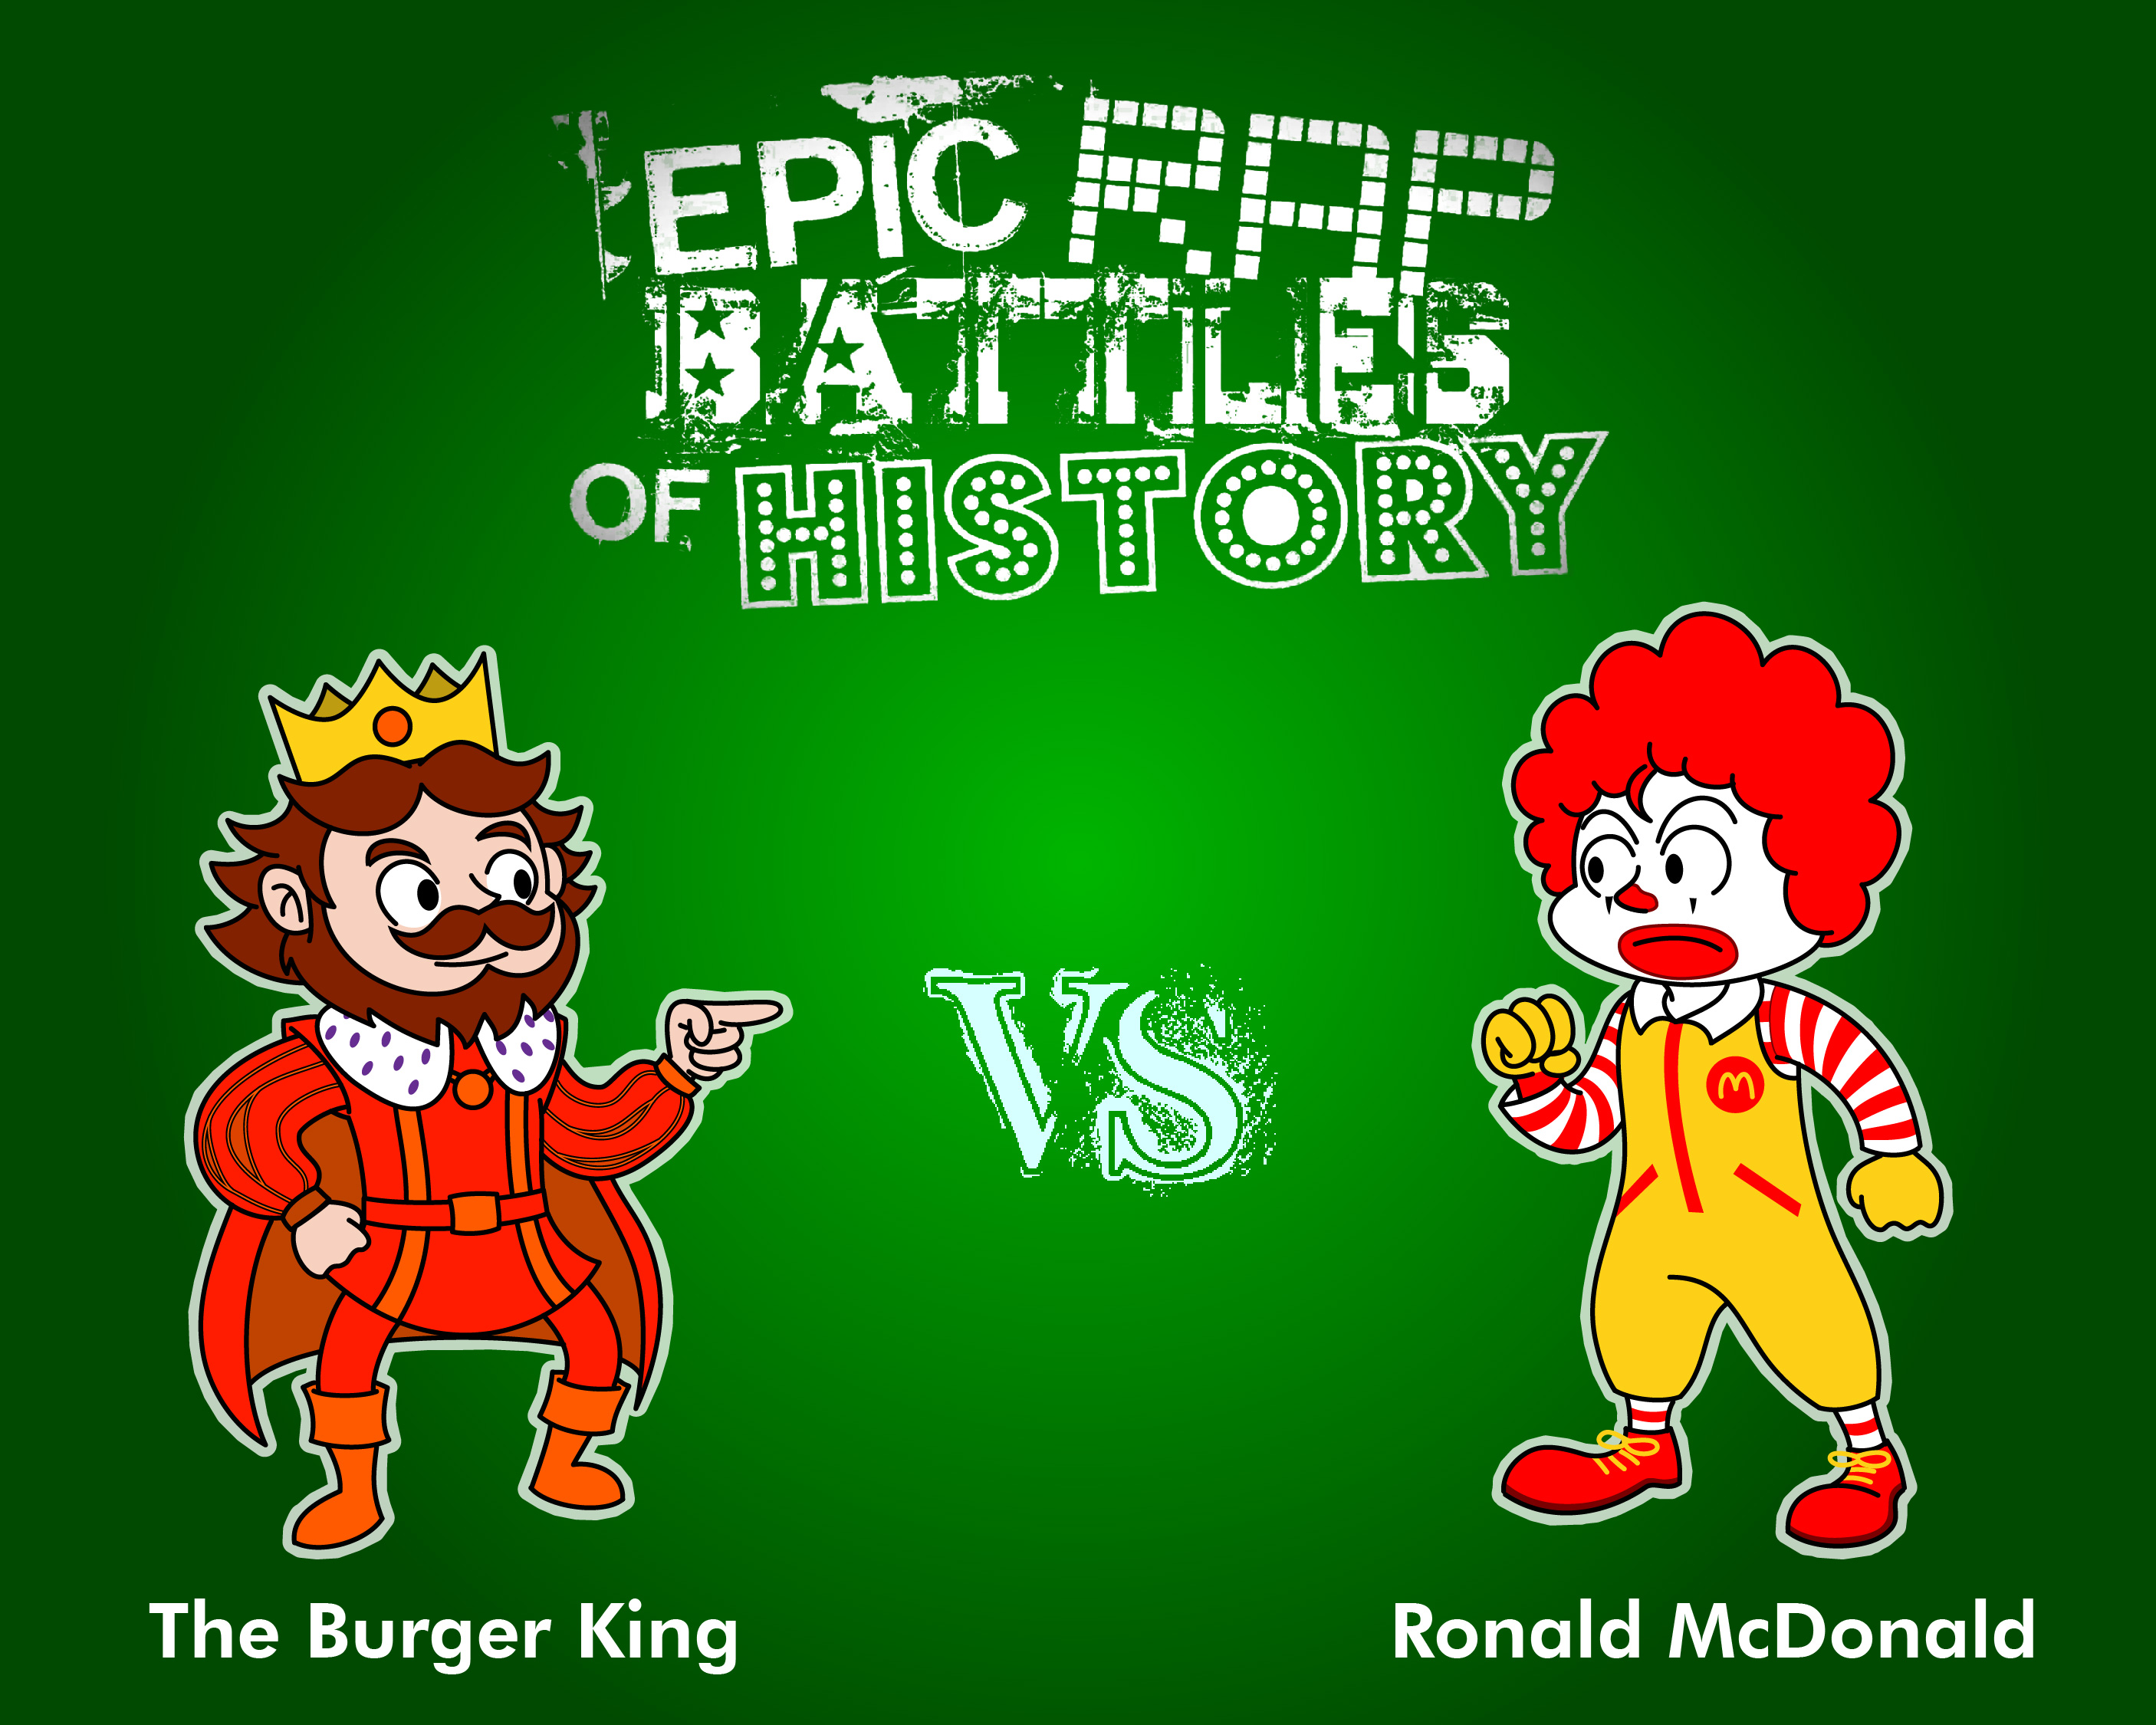 Ronald McDonald vs The Burger King by Sneakers on Newgrounds